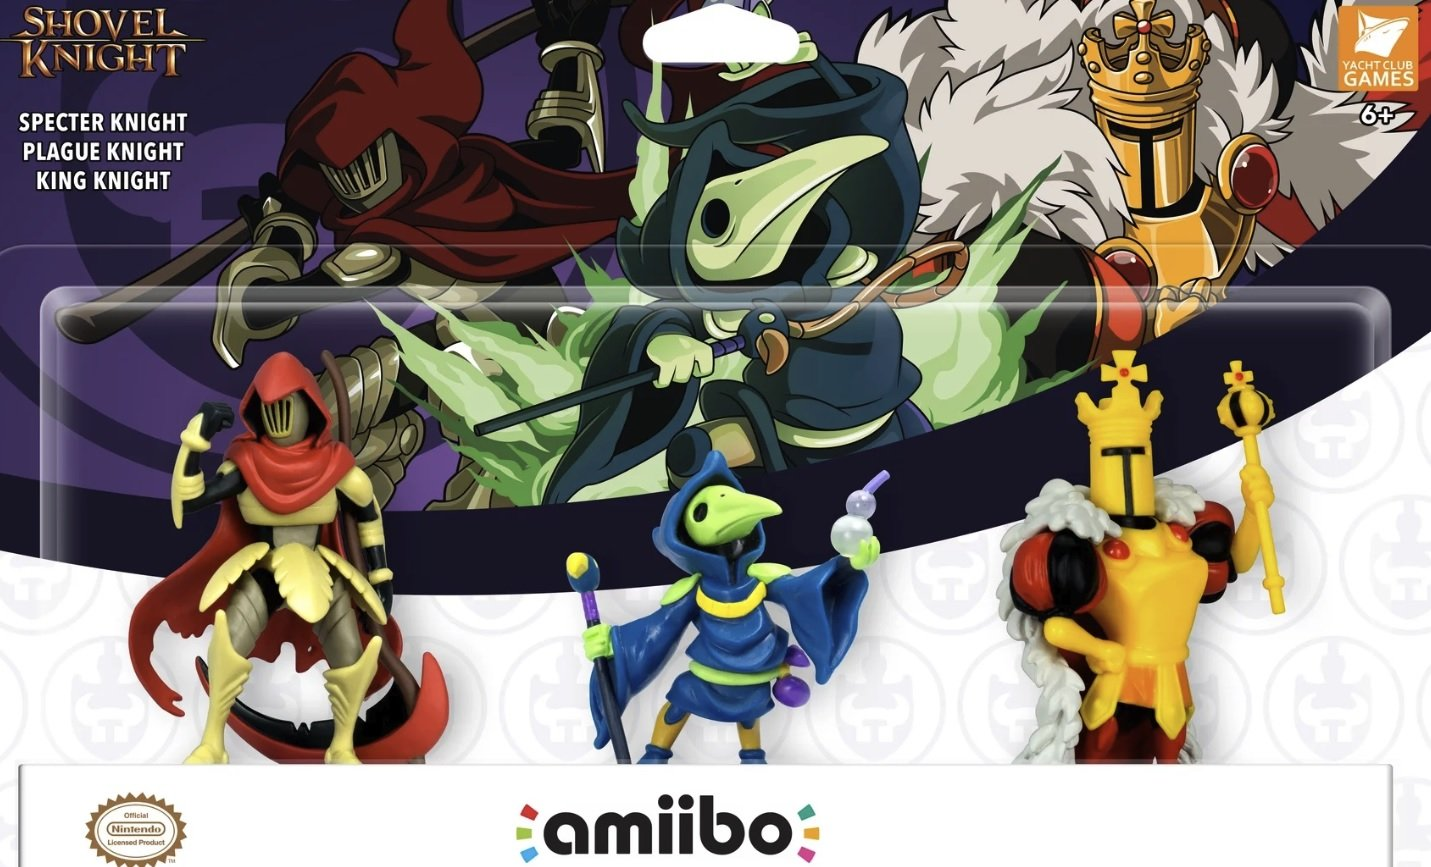 Shovel Knight's long-awaited amiibo three-pack will arrive in April 2019 along with the final two expansions screenshot